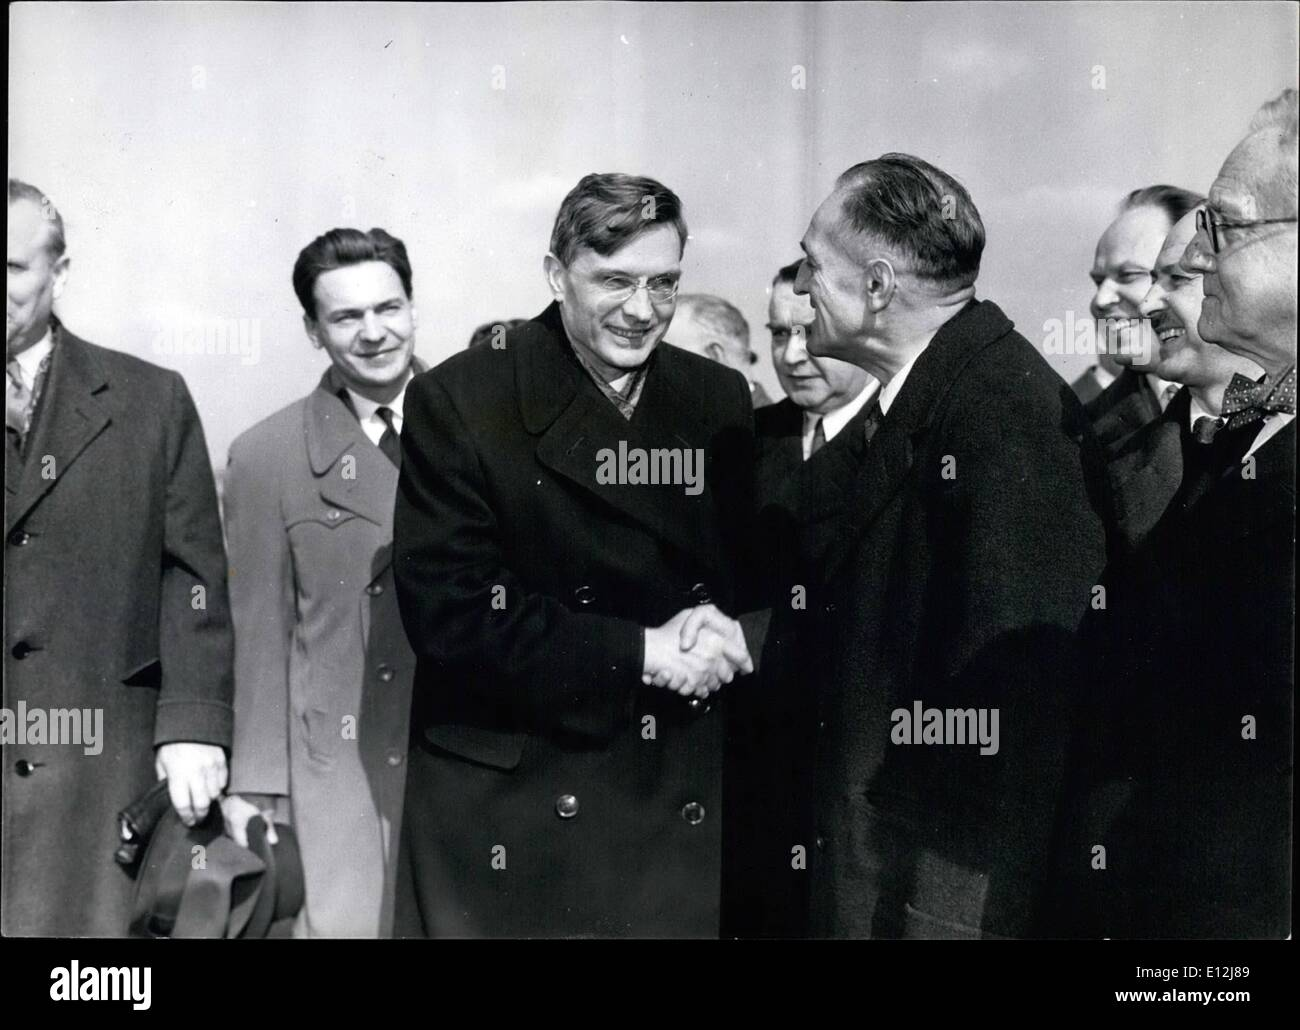 Feb. 24, 2012 - Photo Shows Mr. Julius Silverman (right) greets Mr. Michael Suslov, chairman of the Foreign Affairs Committee of the Soviet Presidium when he arrived with his party at London Airport today. - Stock Image